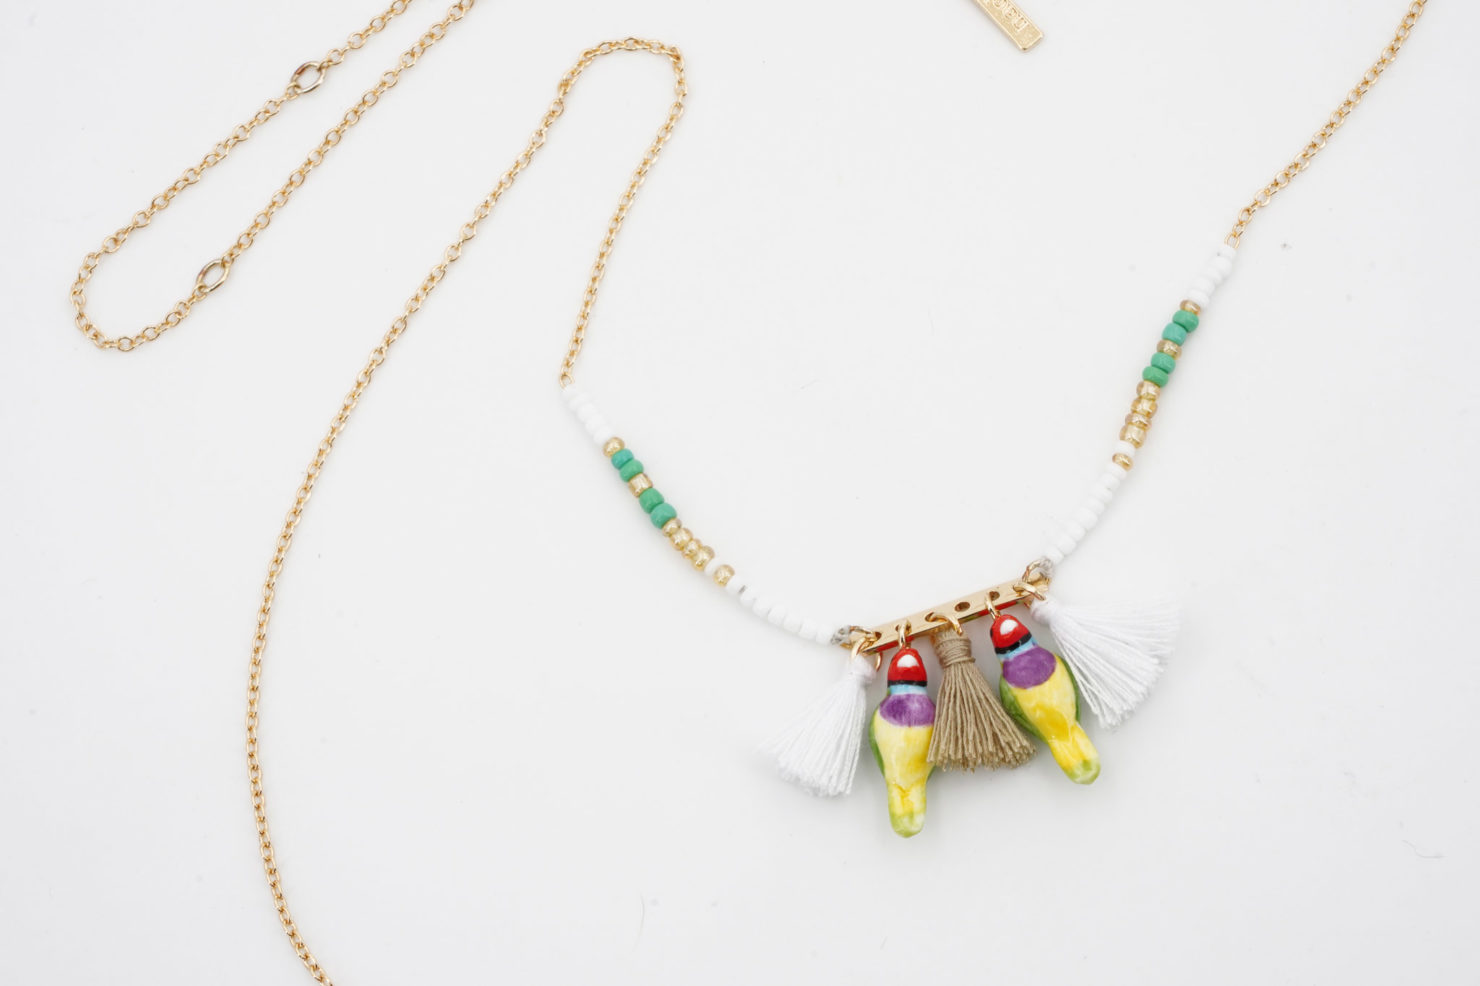 MINI GOULDIAN FINCH BIRDS MULTI NECKLACE - NACH